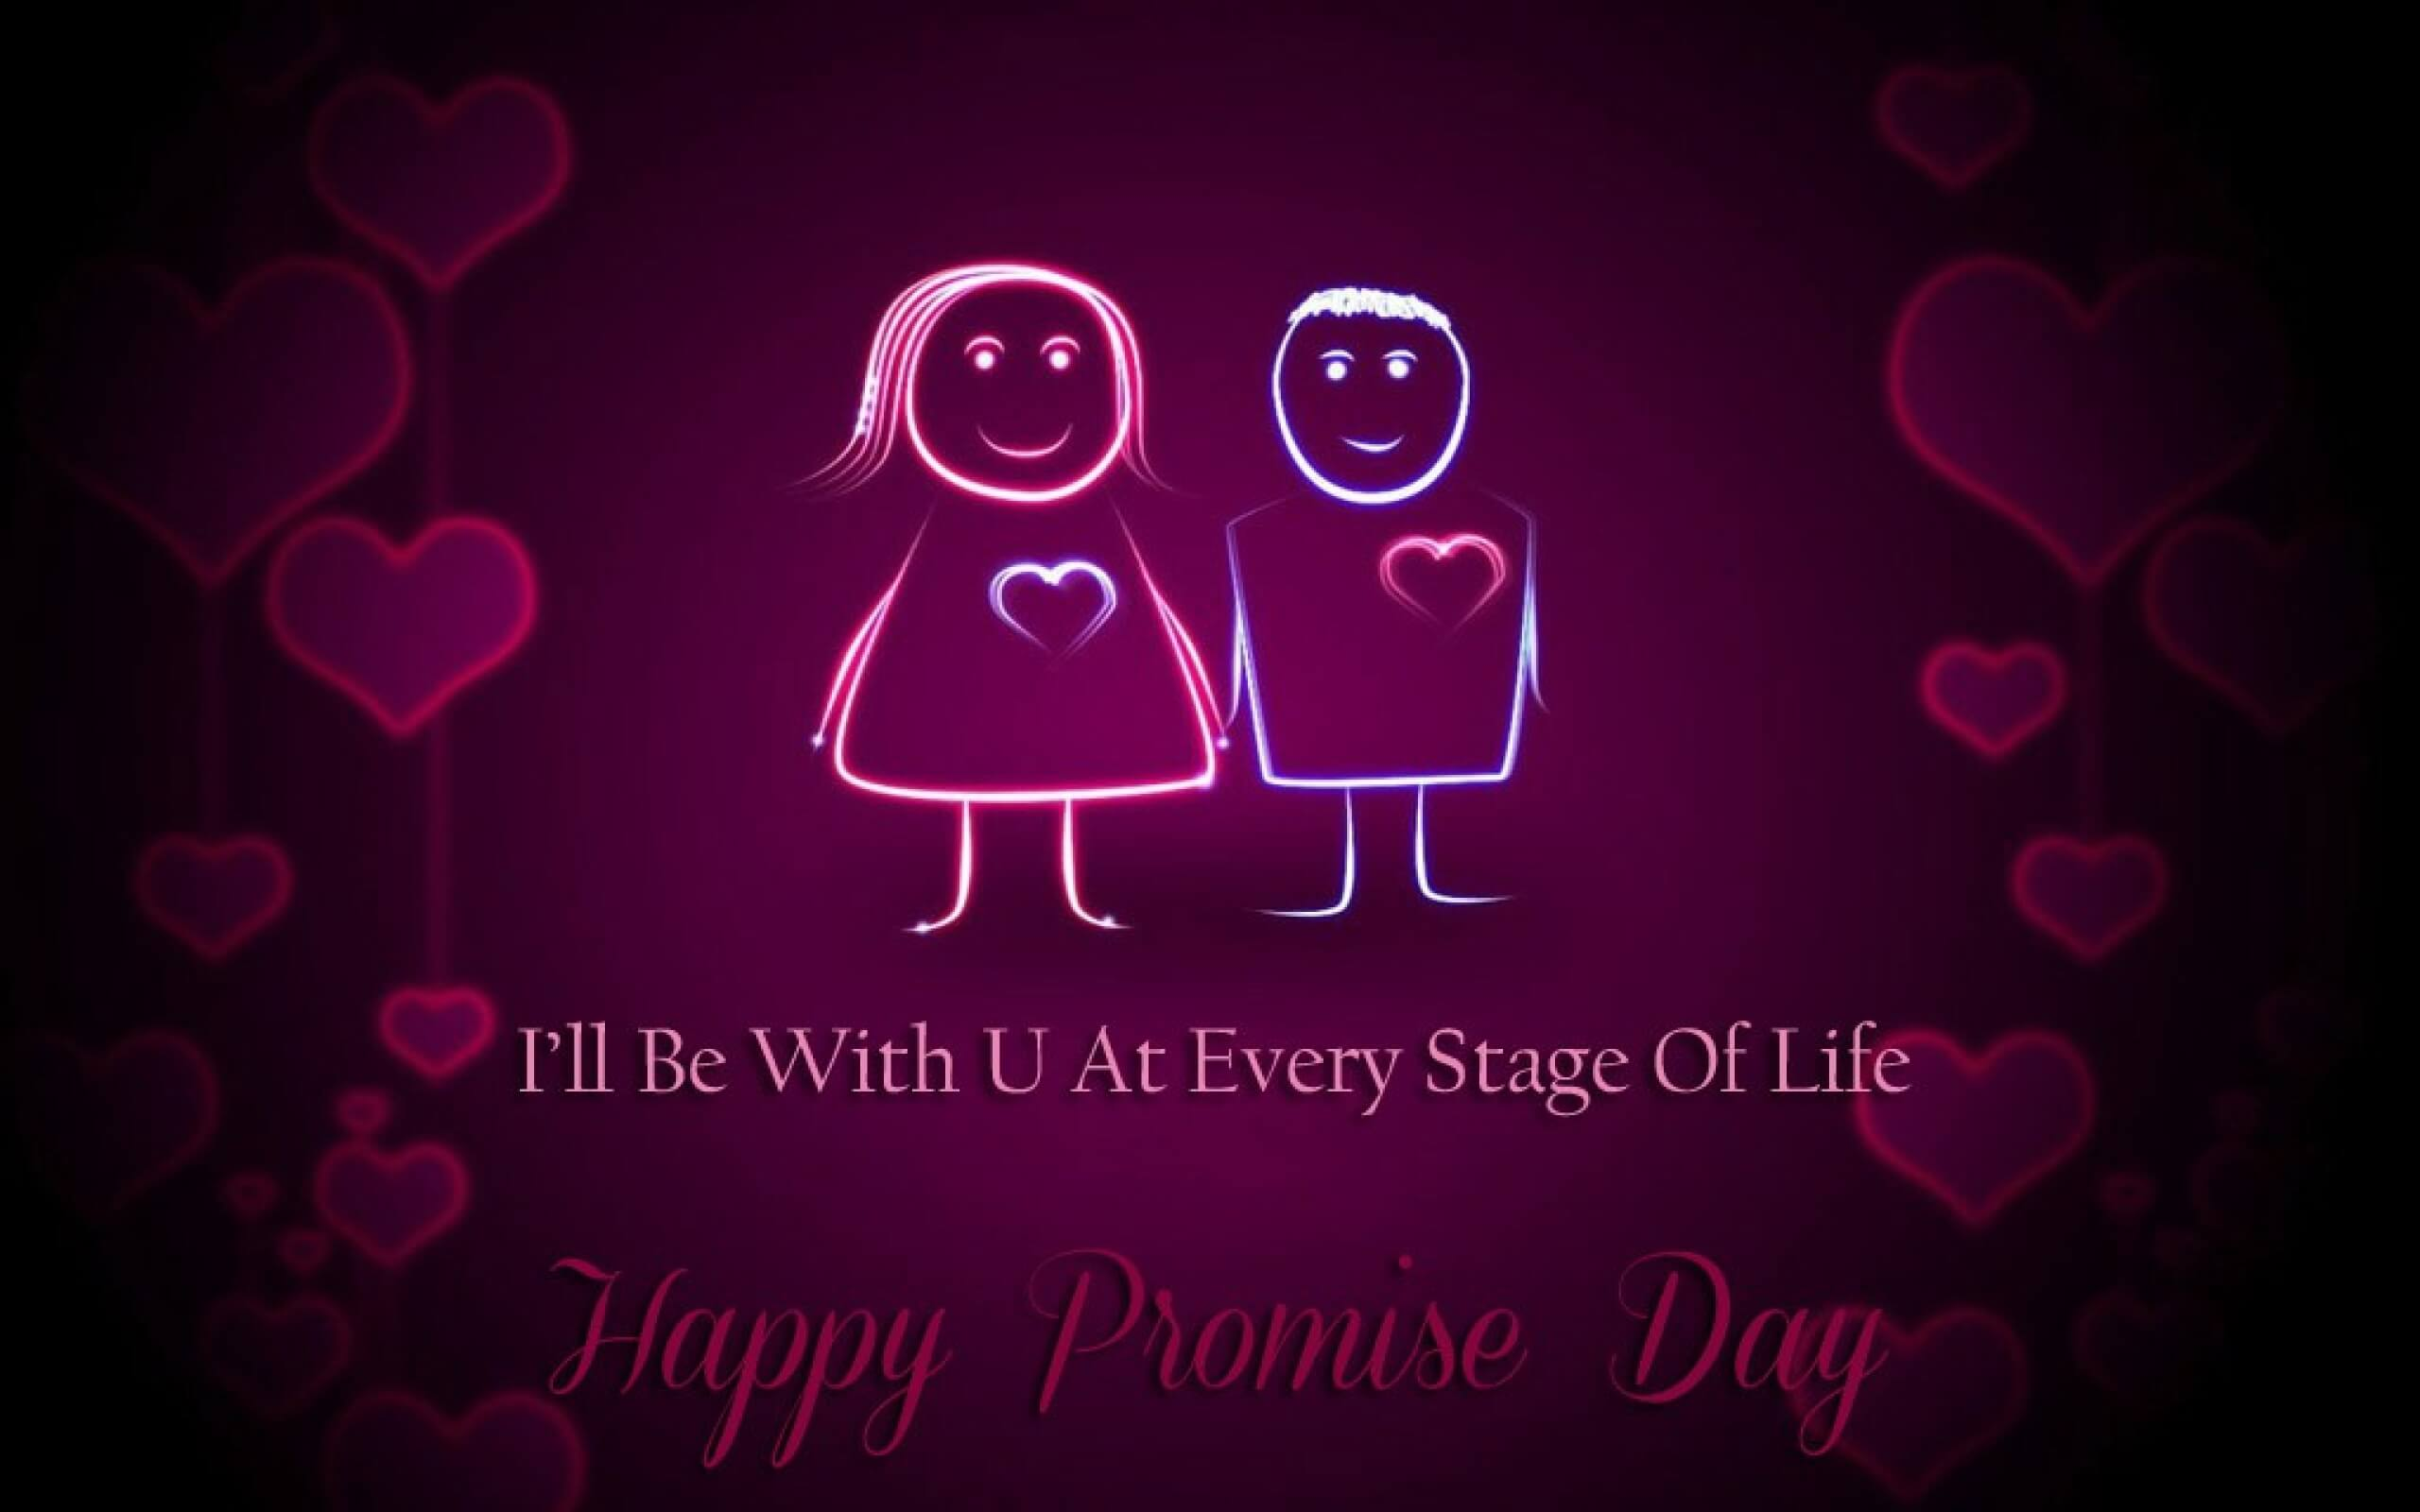 happy promise day wishes love valentine quotes facebook latest image hd wallpaper